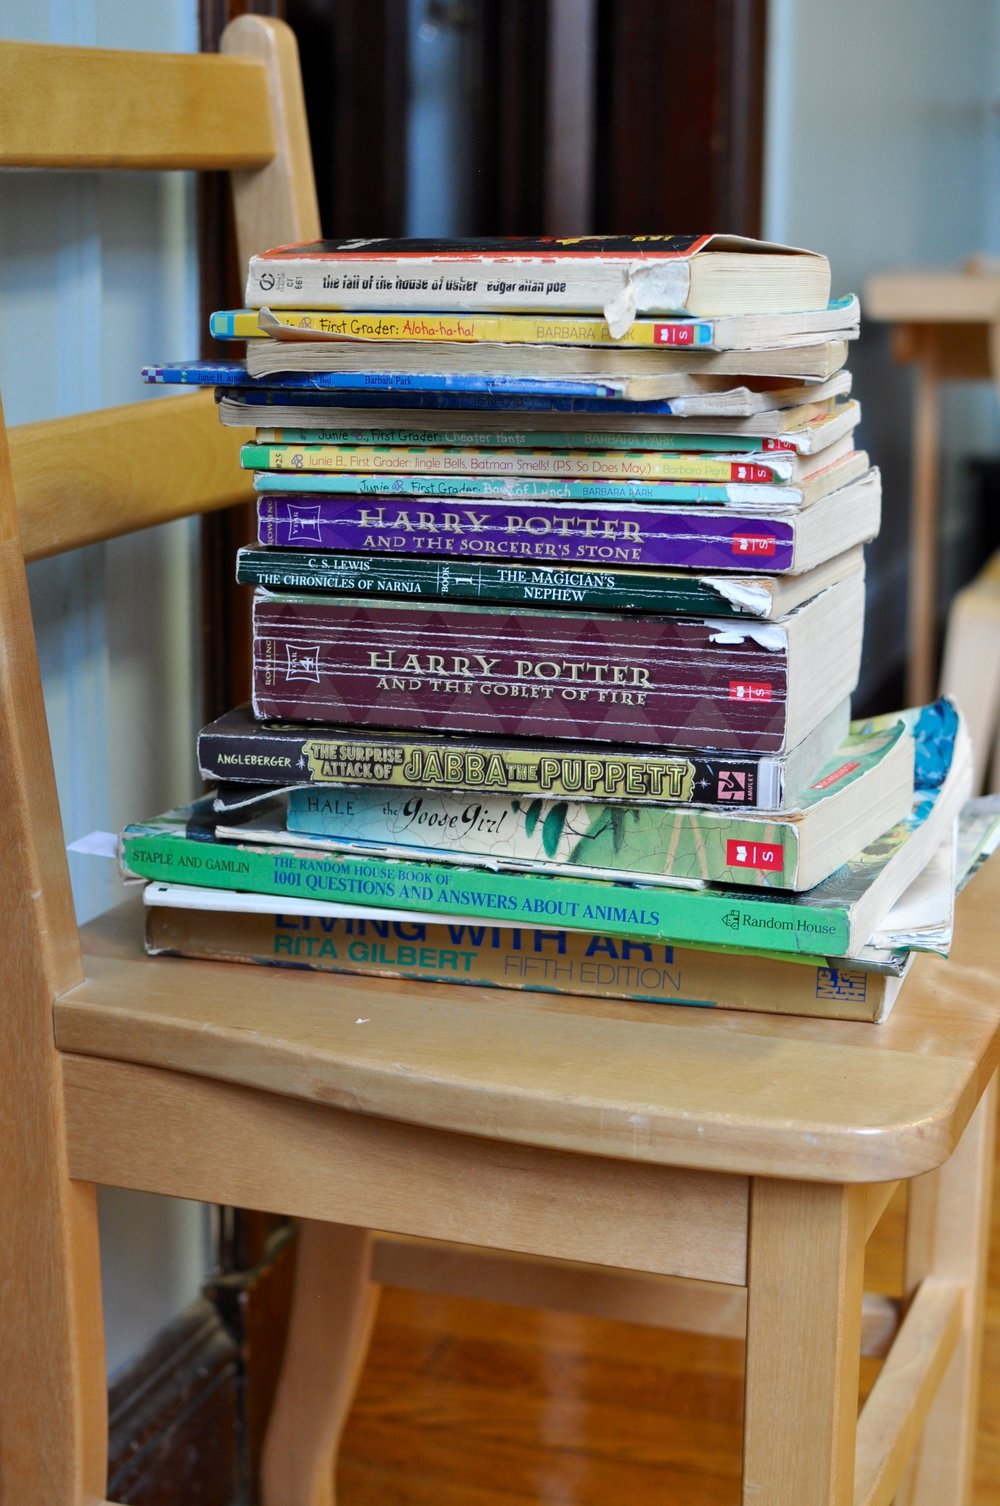 These well-loved books are on their way out — clearly, there's a whole lot of reading going on in here!